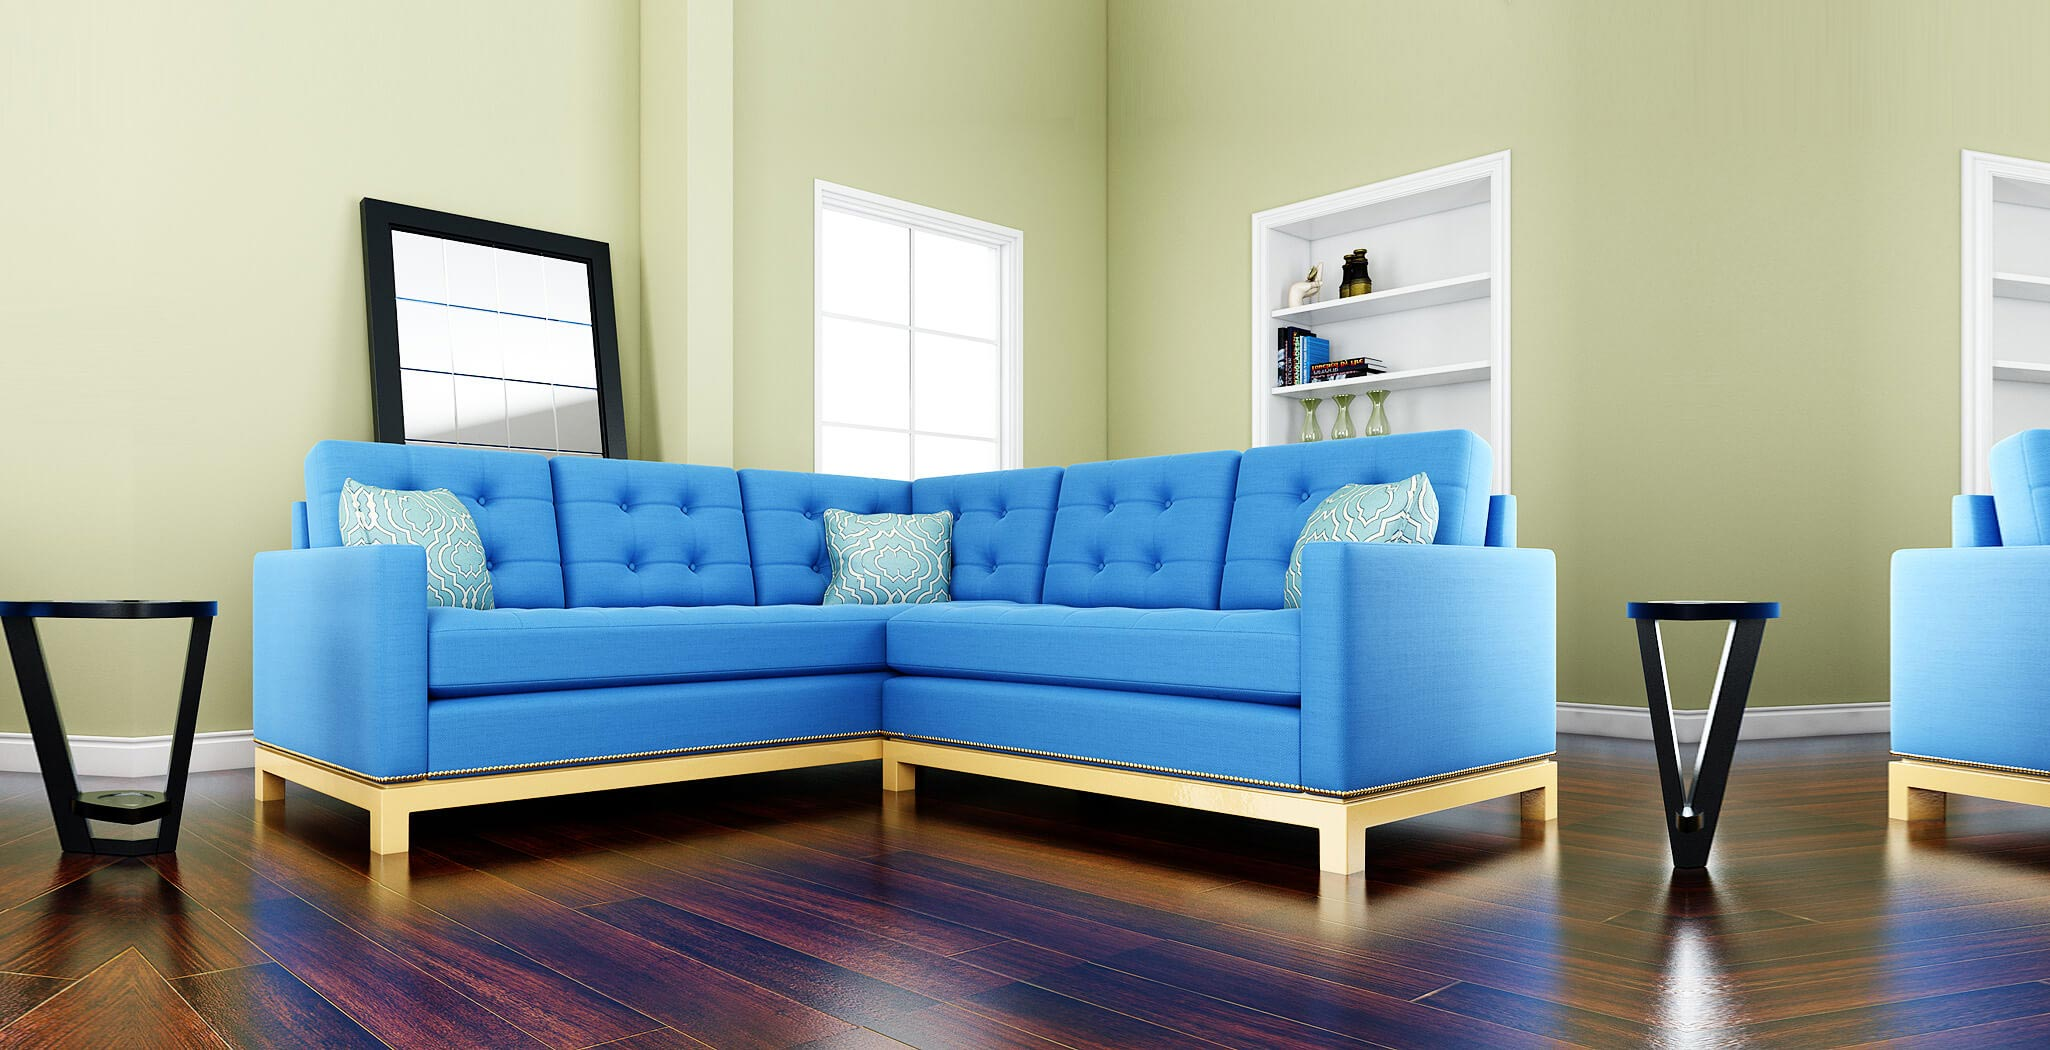 davos sectional furniture gallery 2